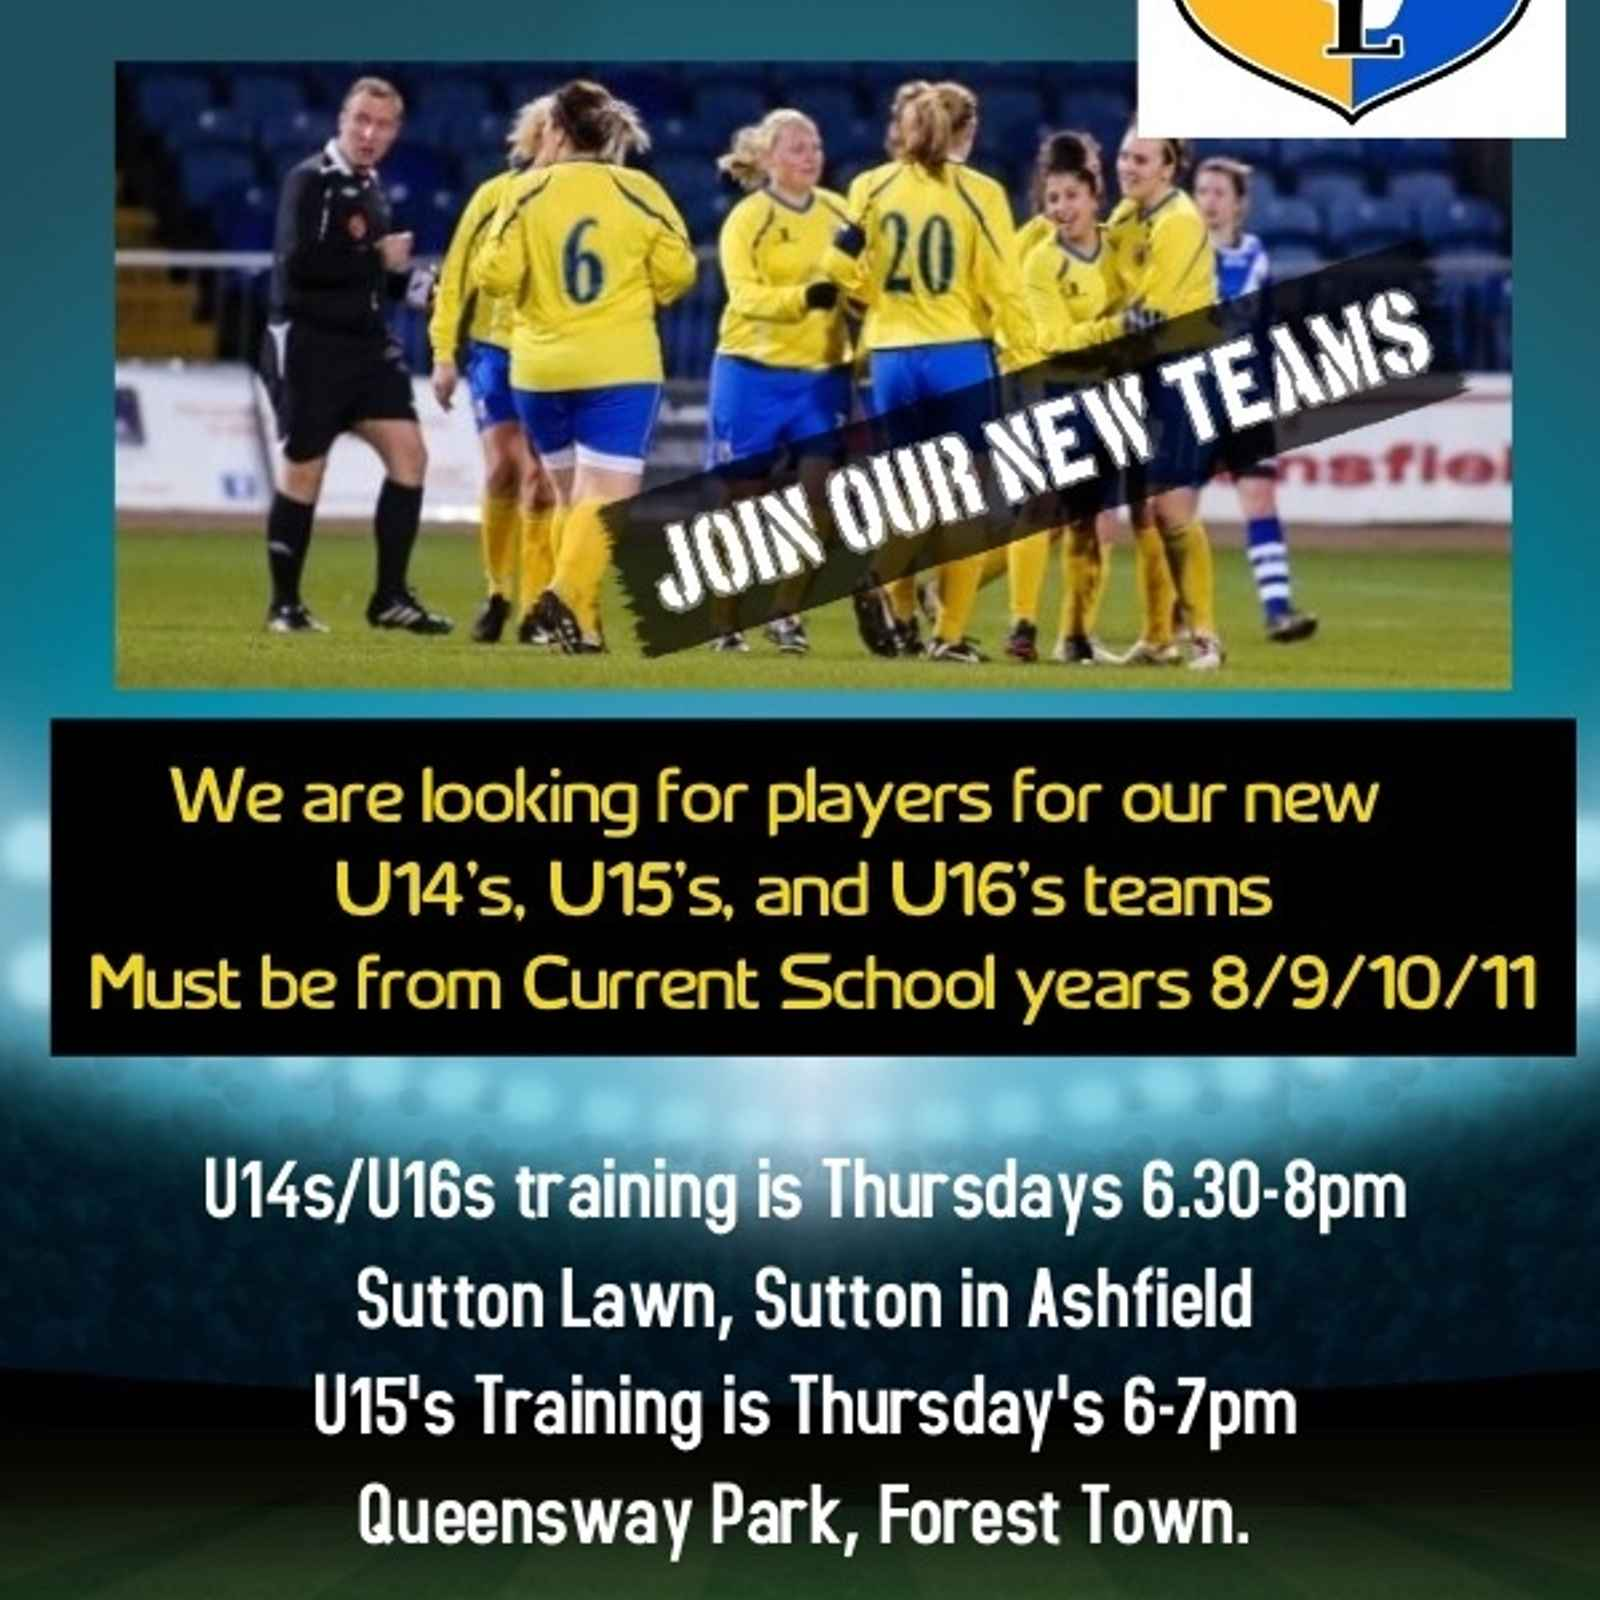 Additional Players Wanted - New Junior u14/u15/u16 teams